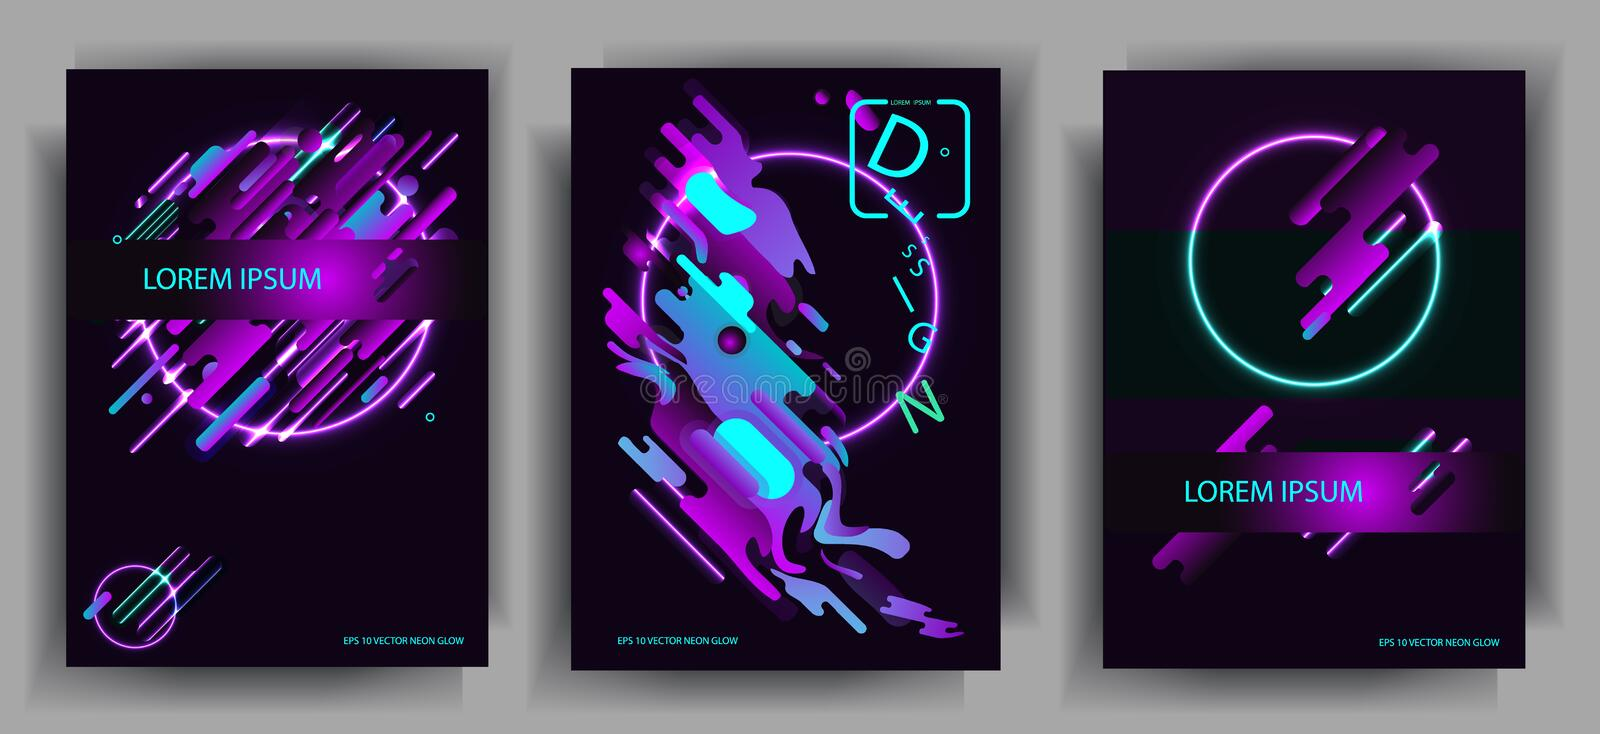 Abstract compositions from the rounded bands, futuristic and modern and neon colors. Vector templates for posters, banners, flyers. And presentations. Vector royalty free illustration